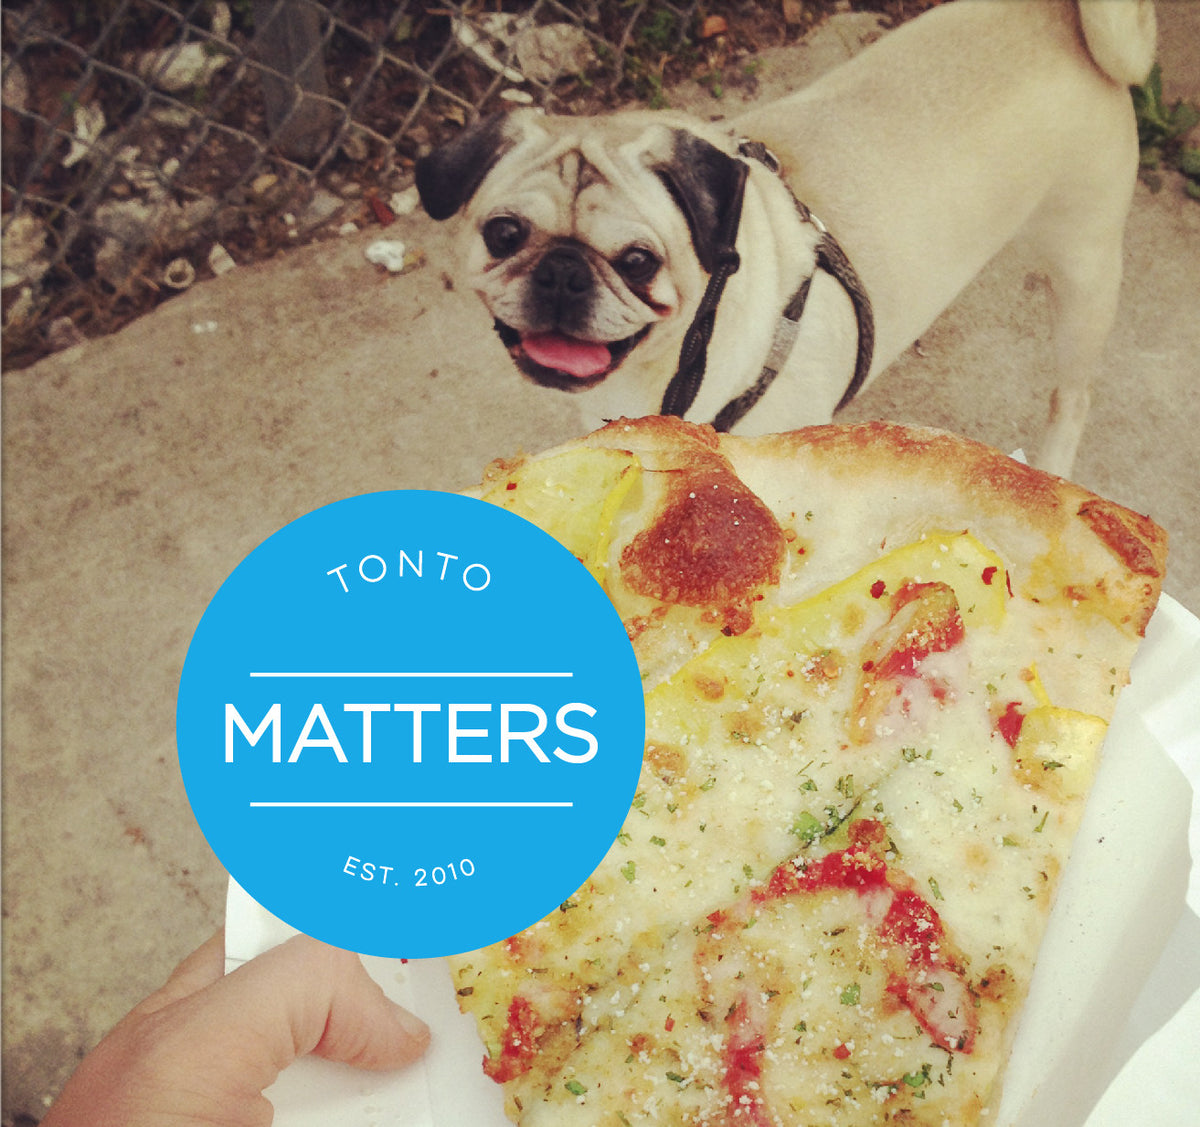 Now dedicated to bringing pizza to pugs around the world.